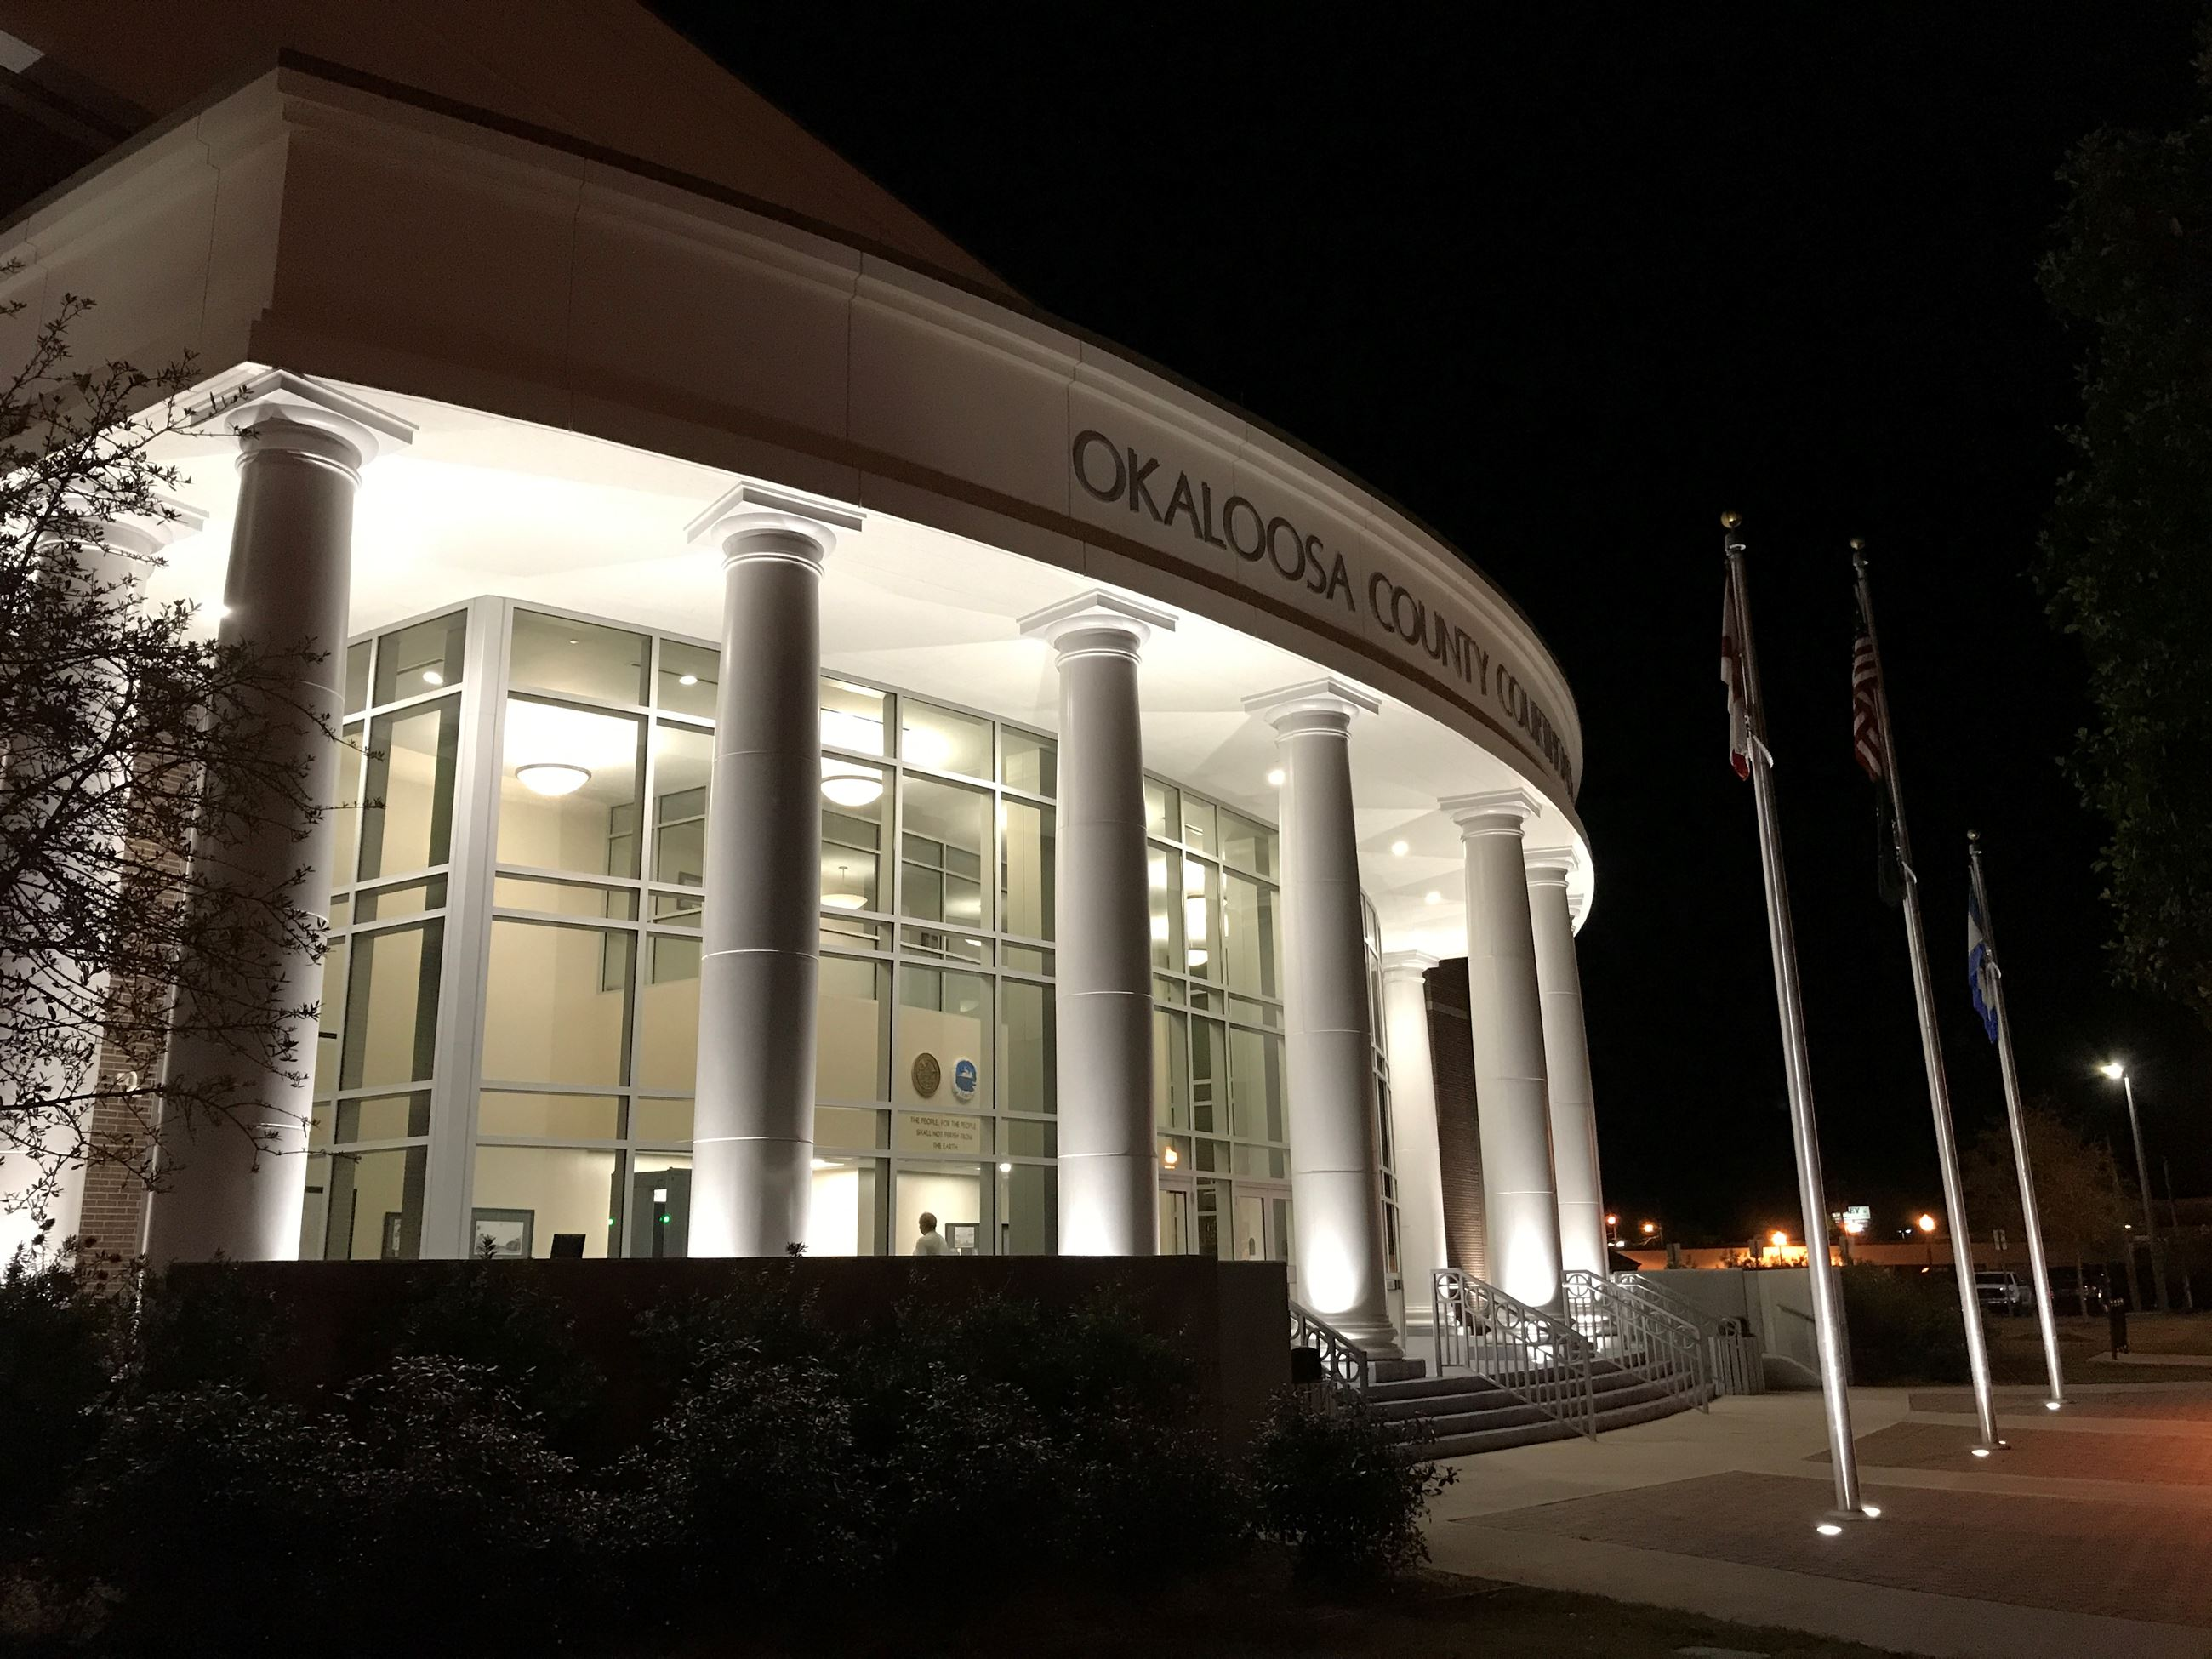 Okaloosa county courthouse at night